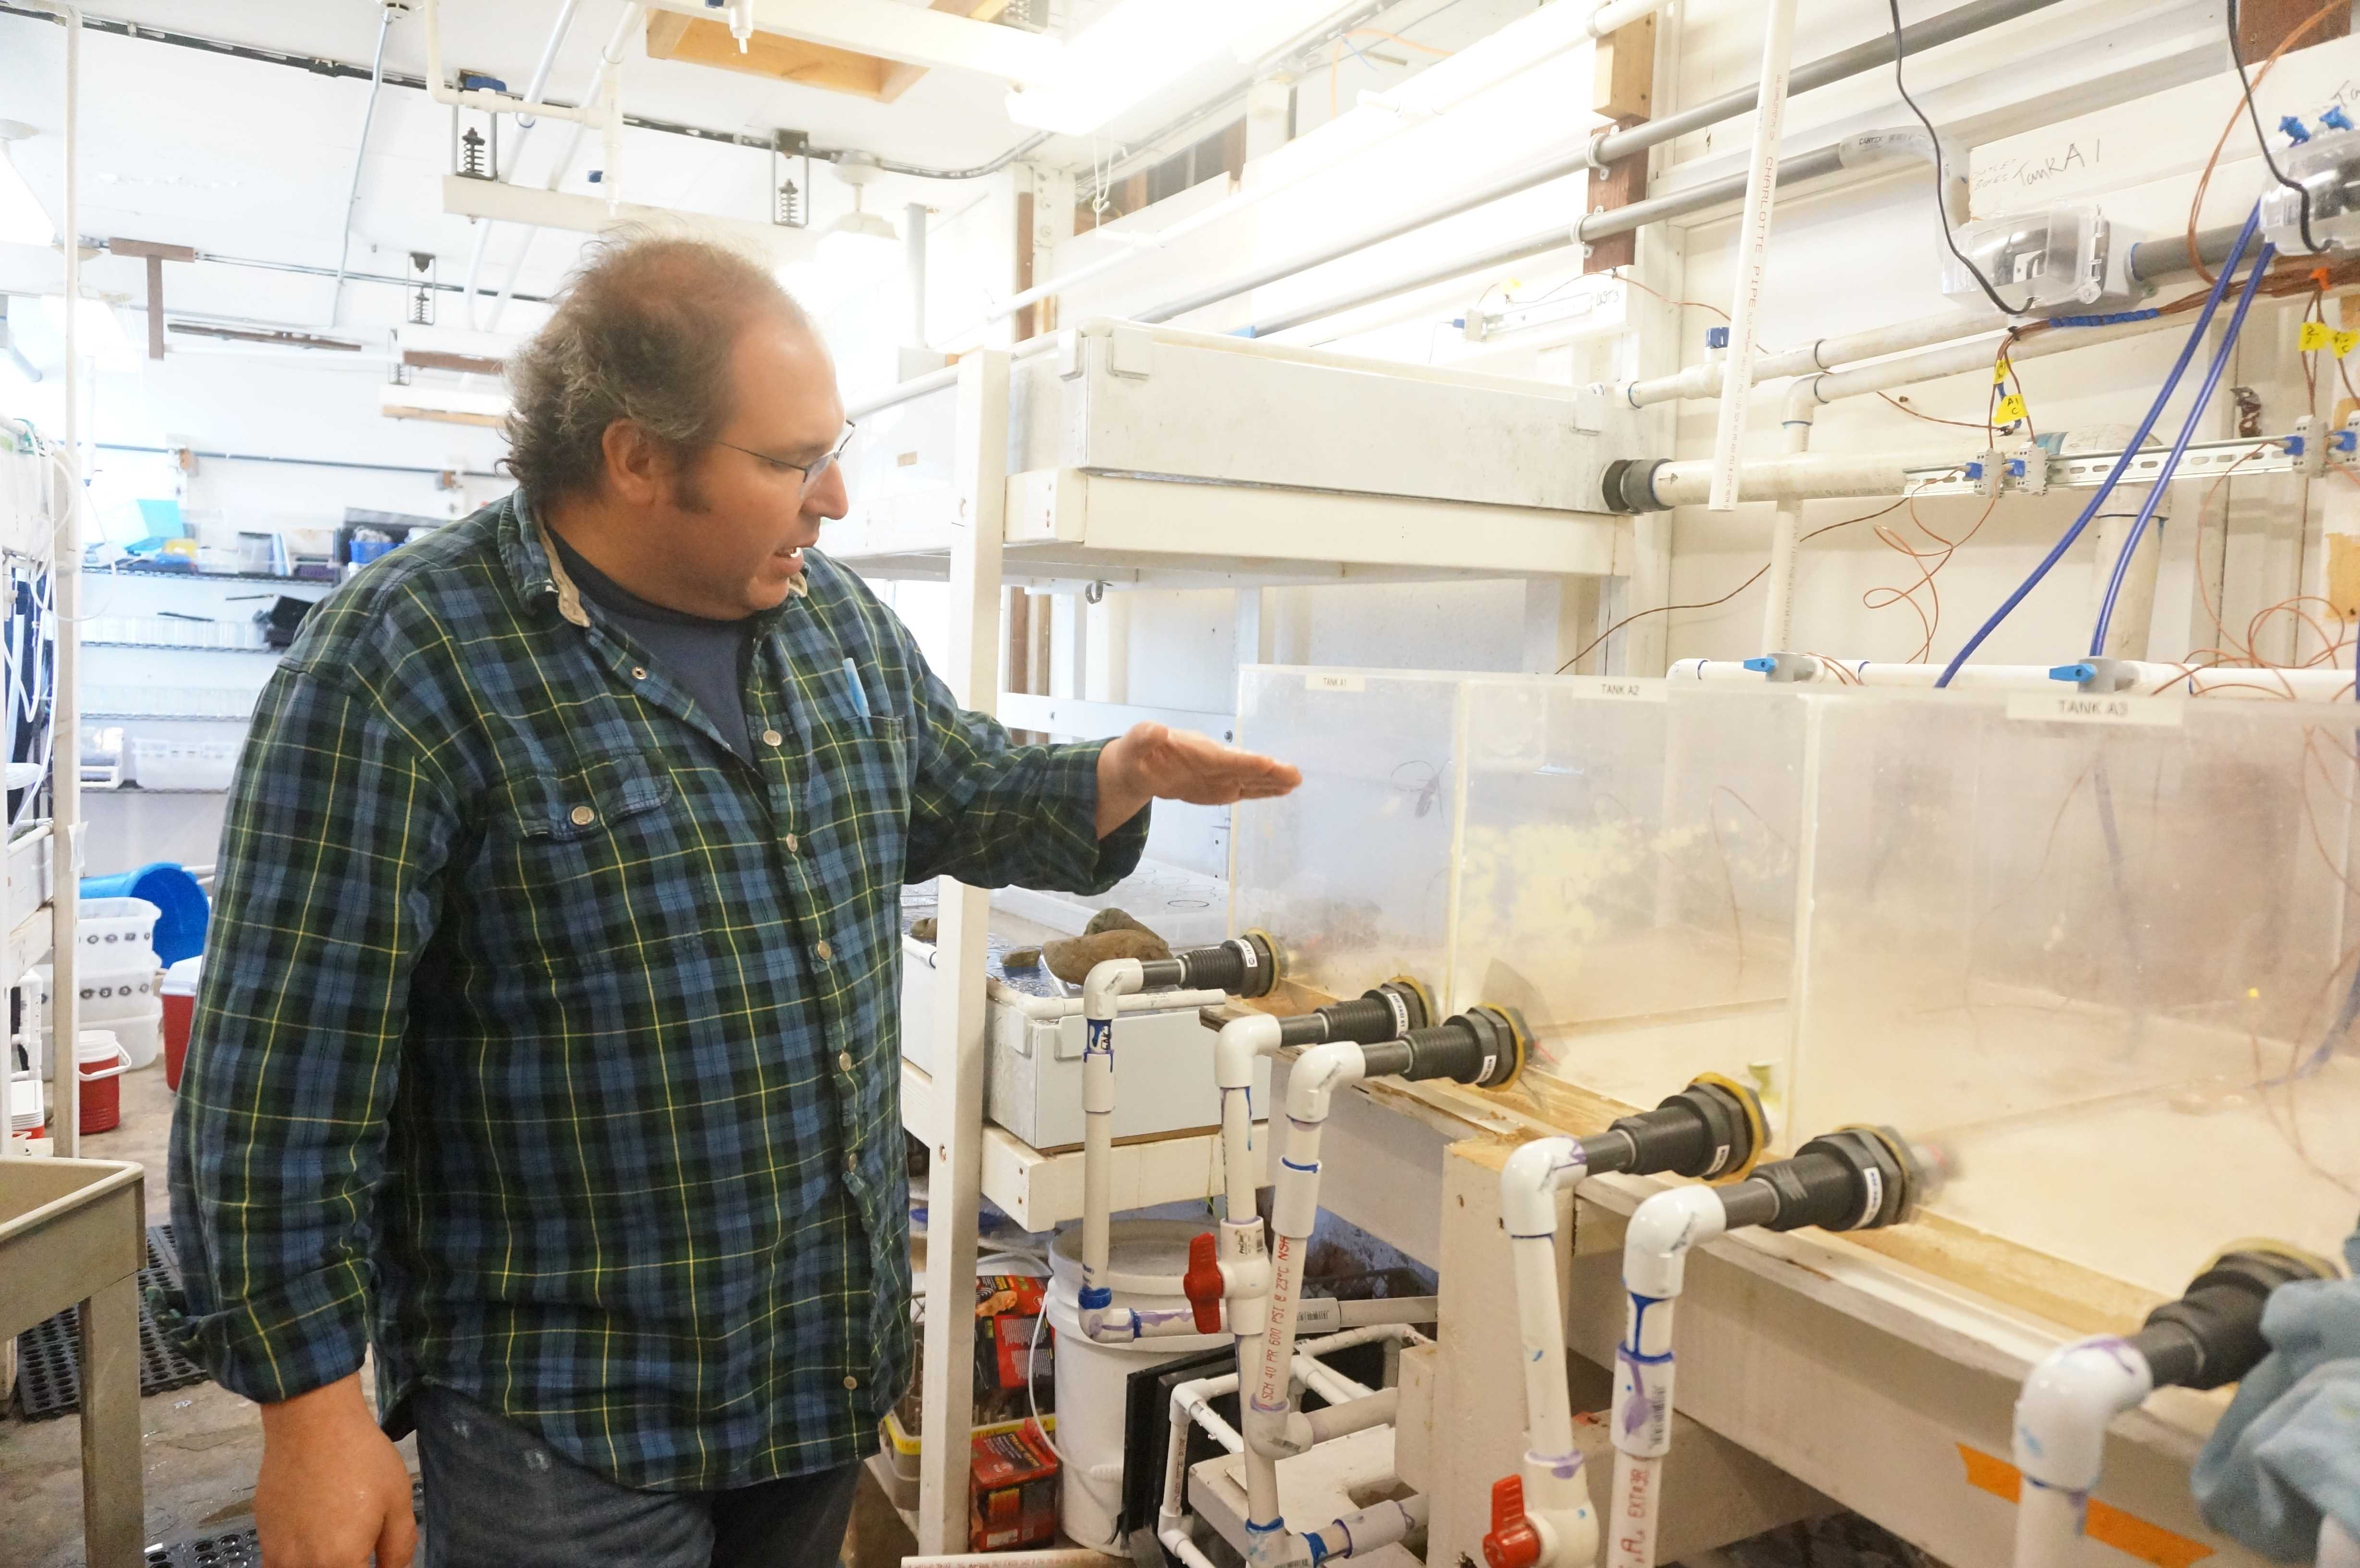 Jonathan Stillman shows how the automatic system of aquarium works in Romberg Tiburon Center on March 31.